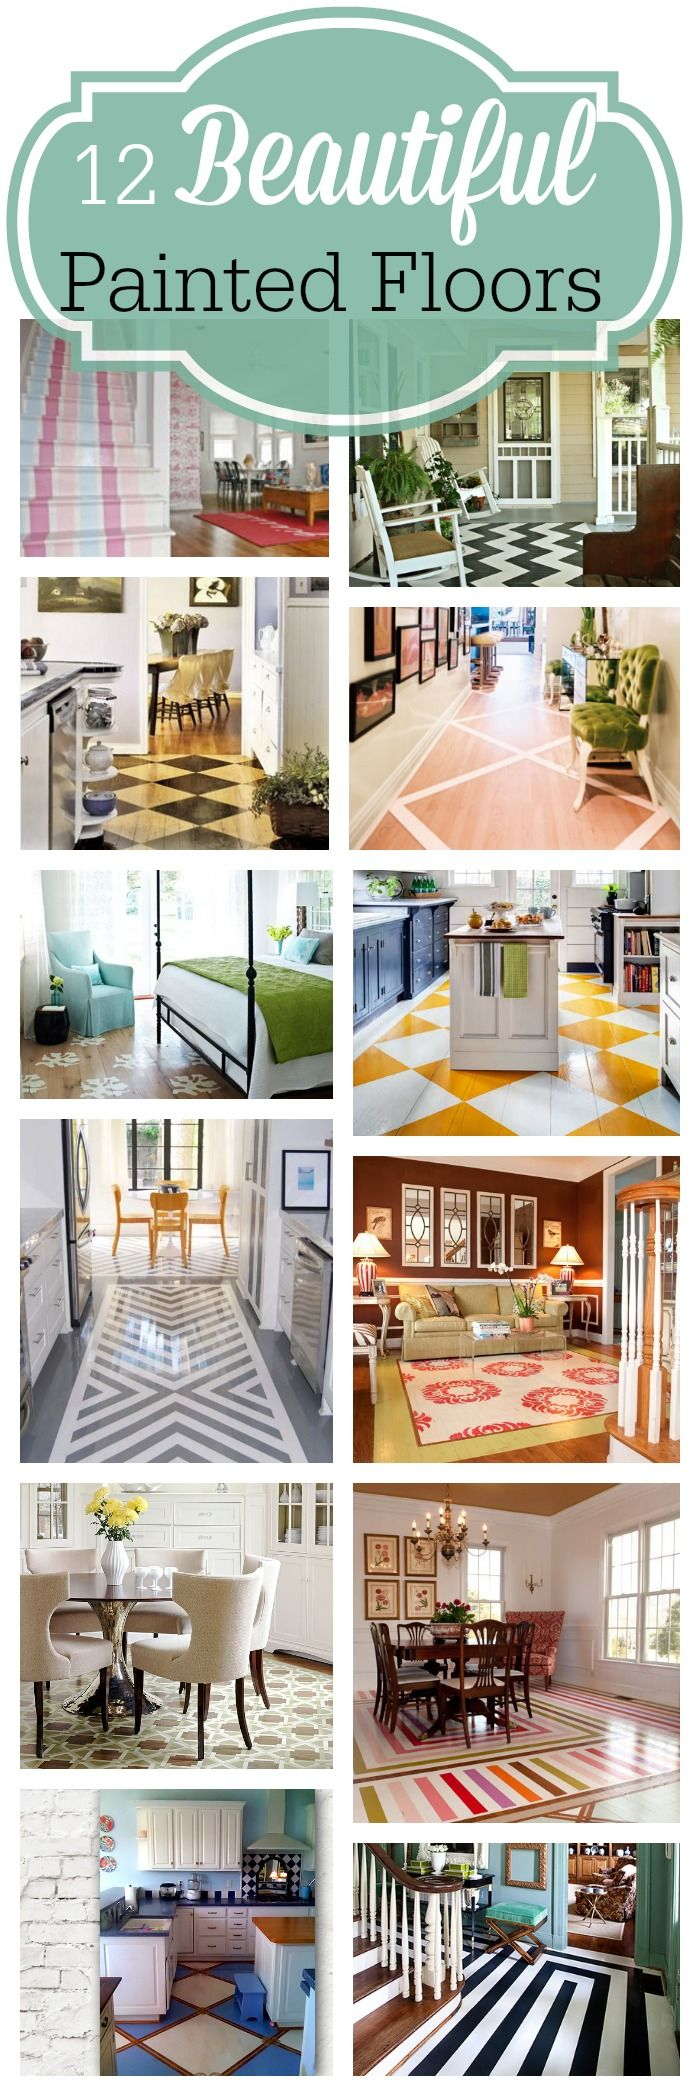 best for the home images on pinterest